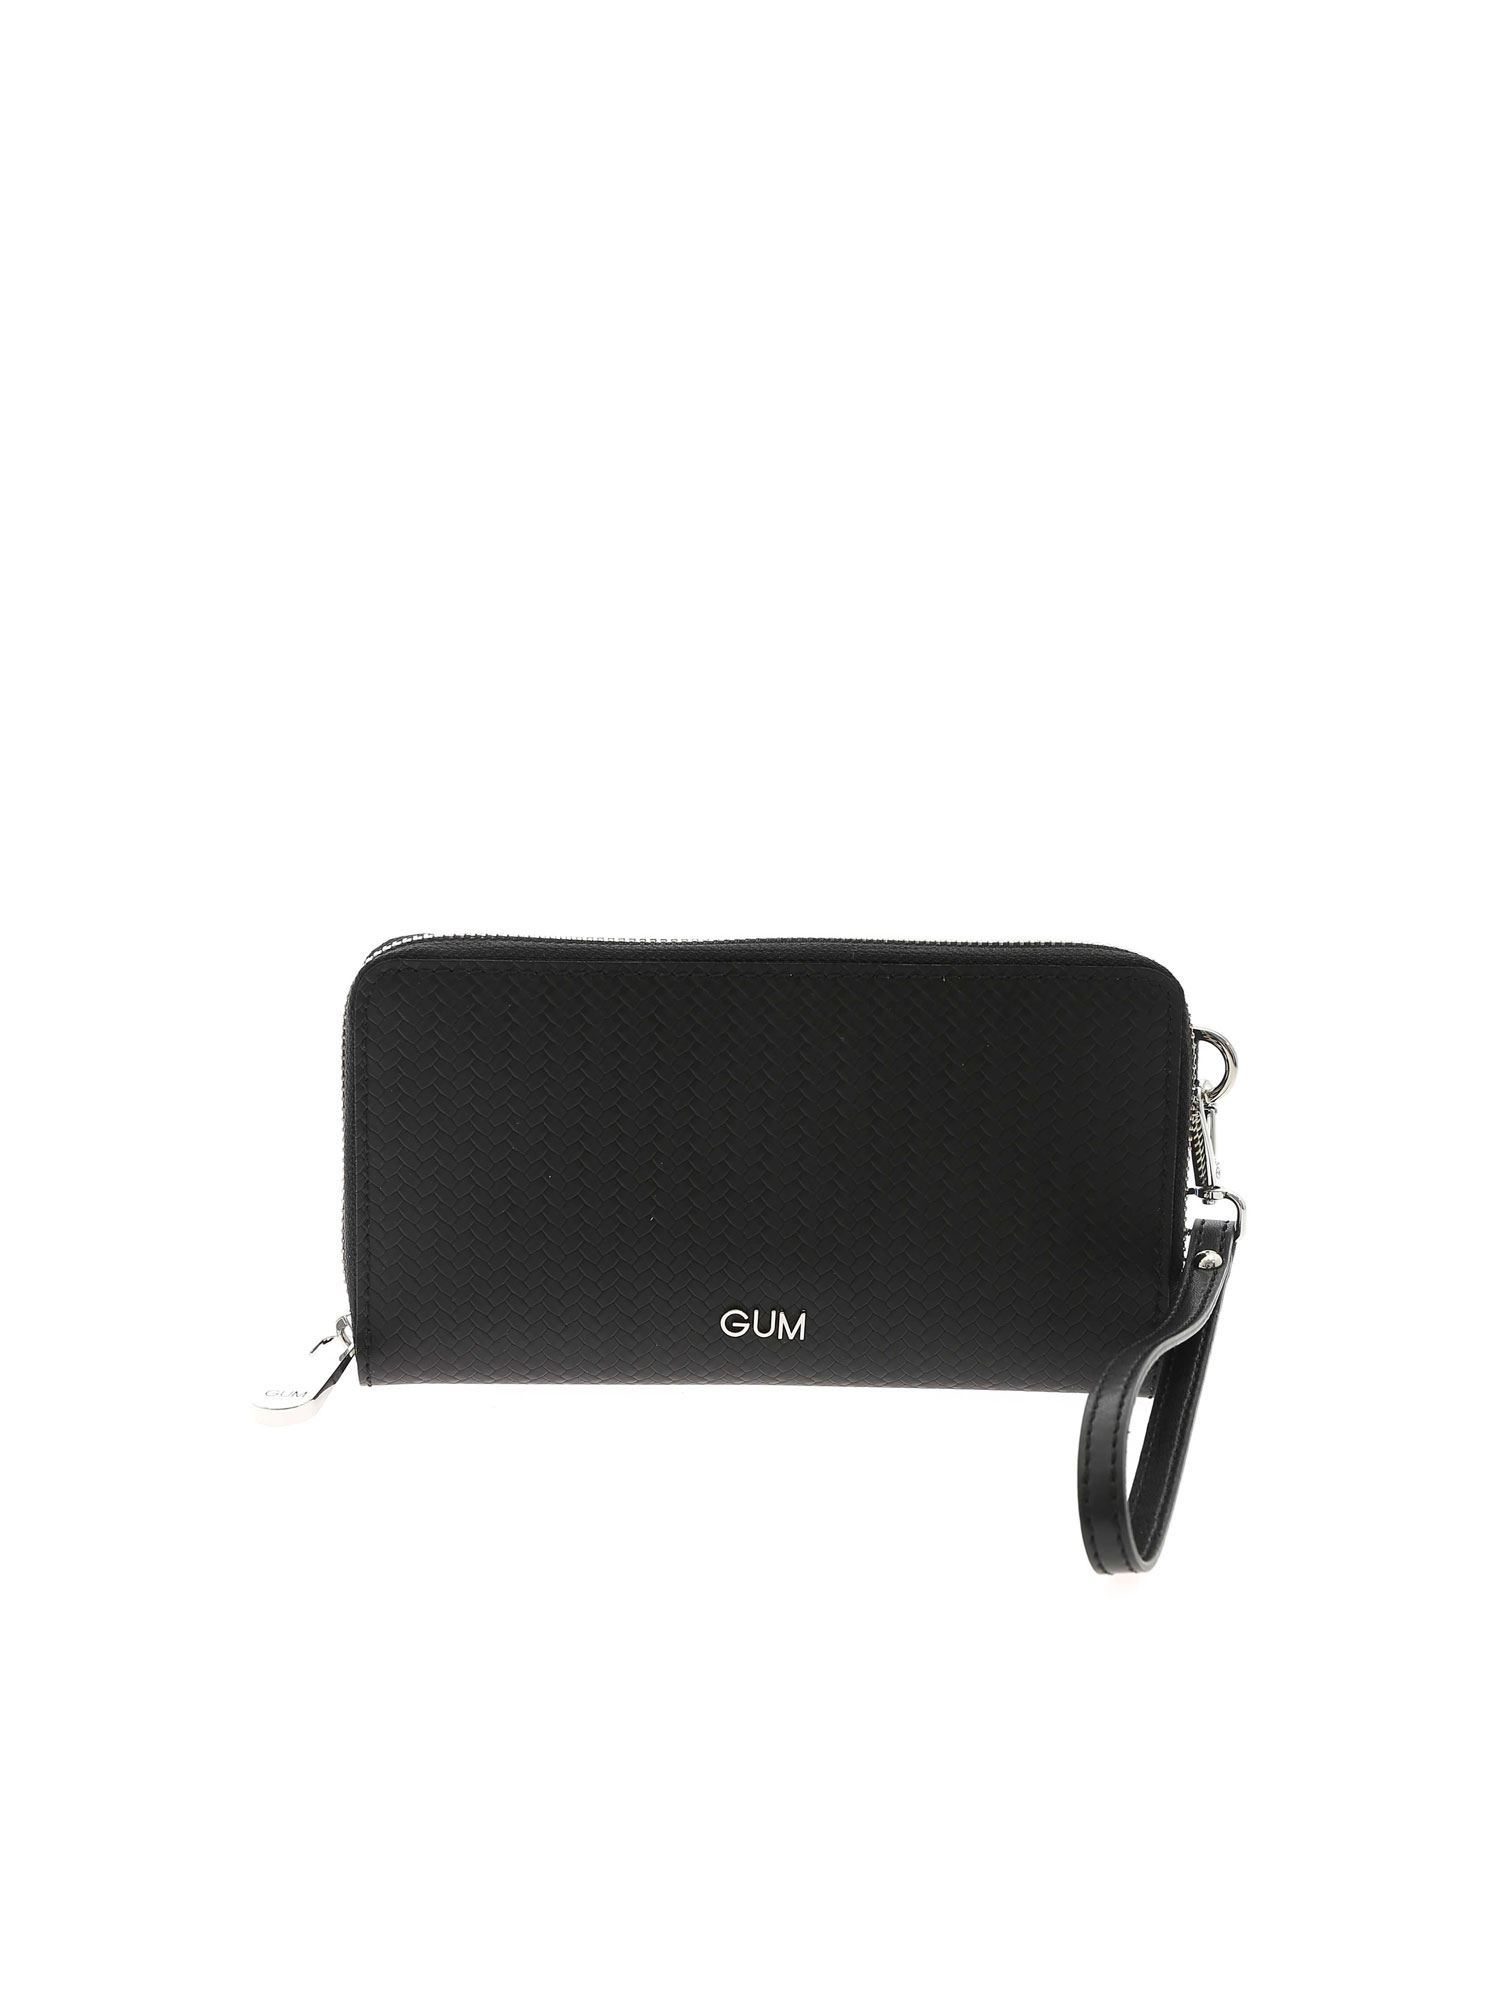 Gum Gianni Chiarini Metallic Logo Wallet In Black